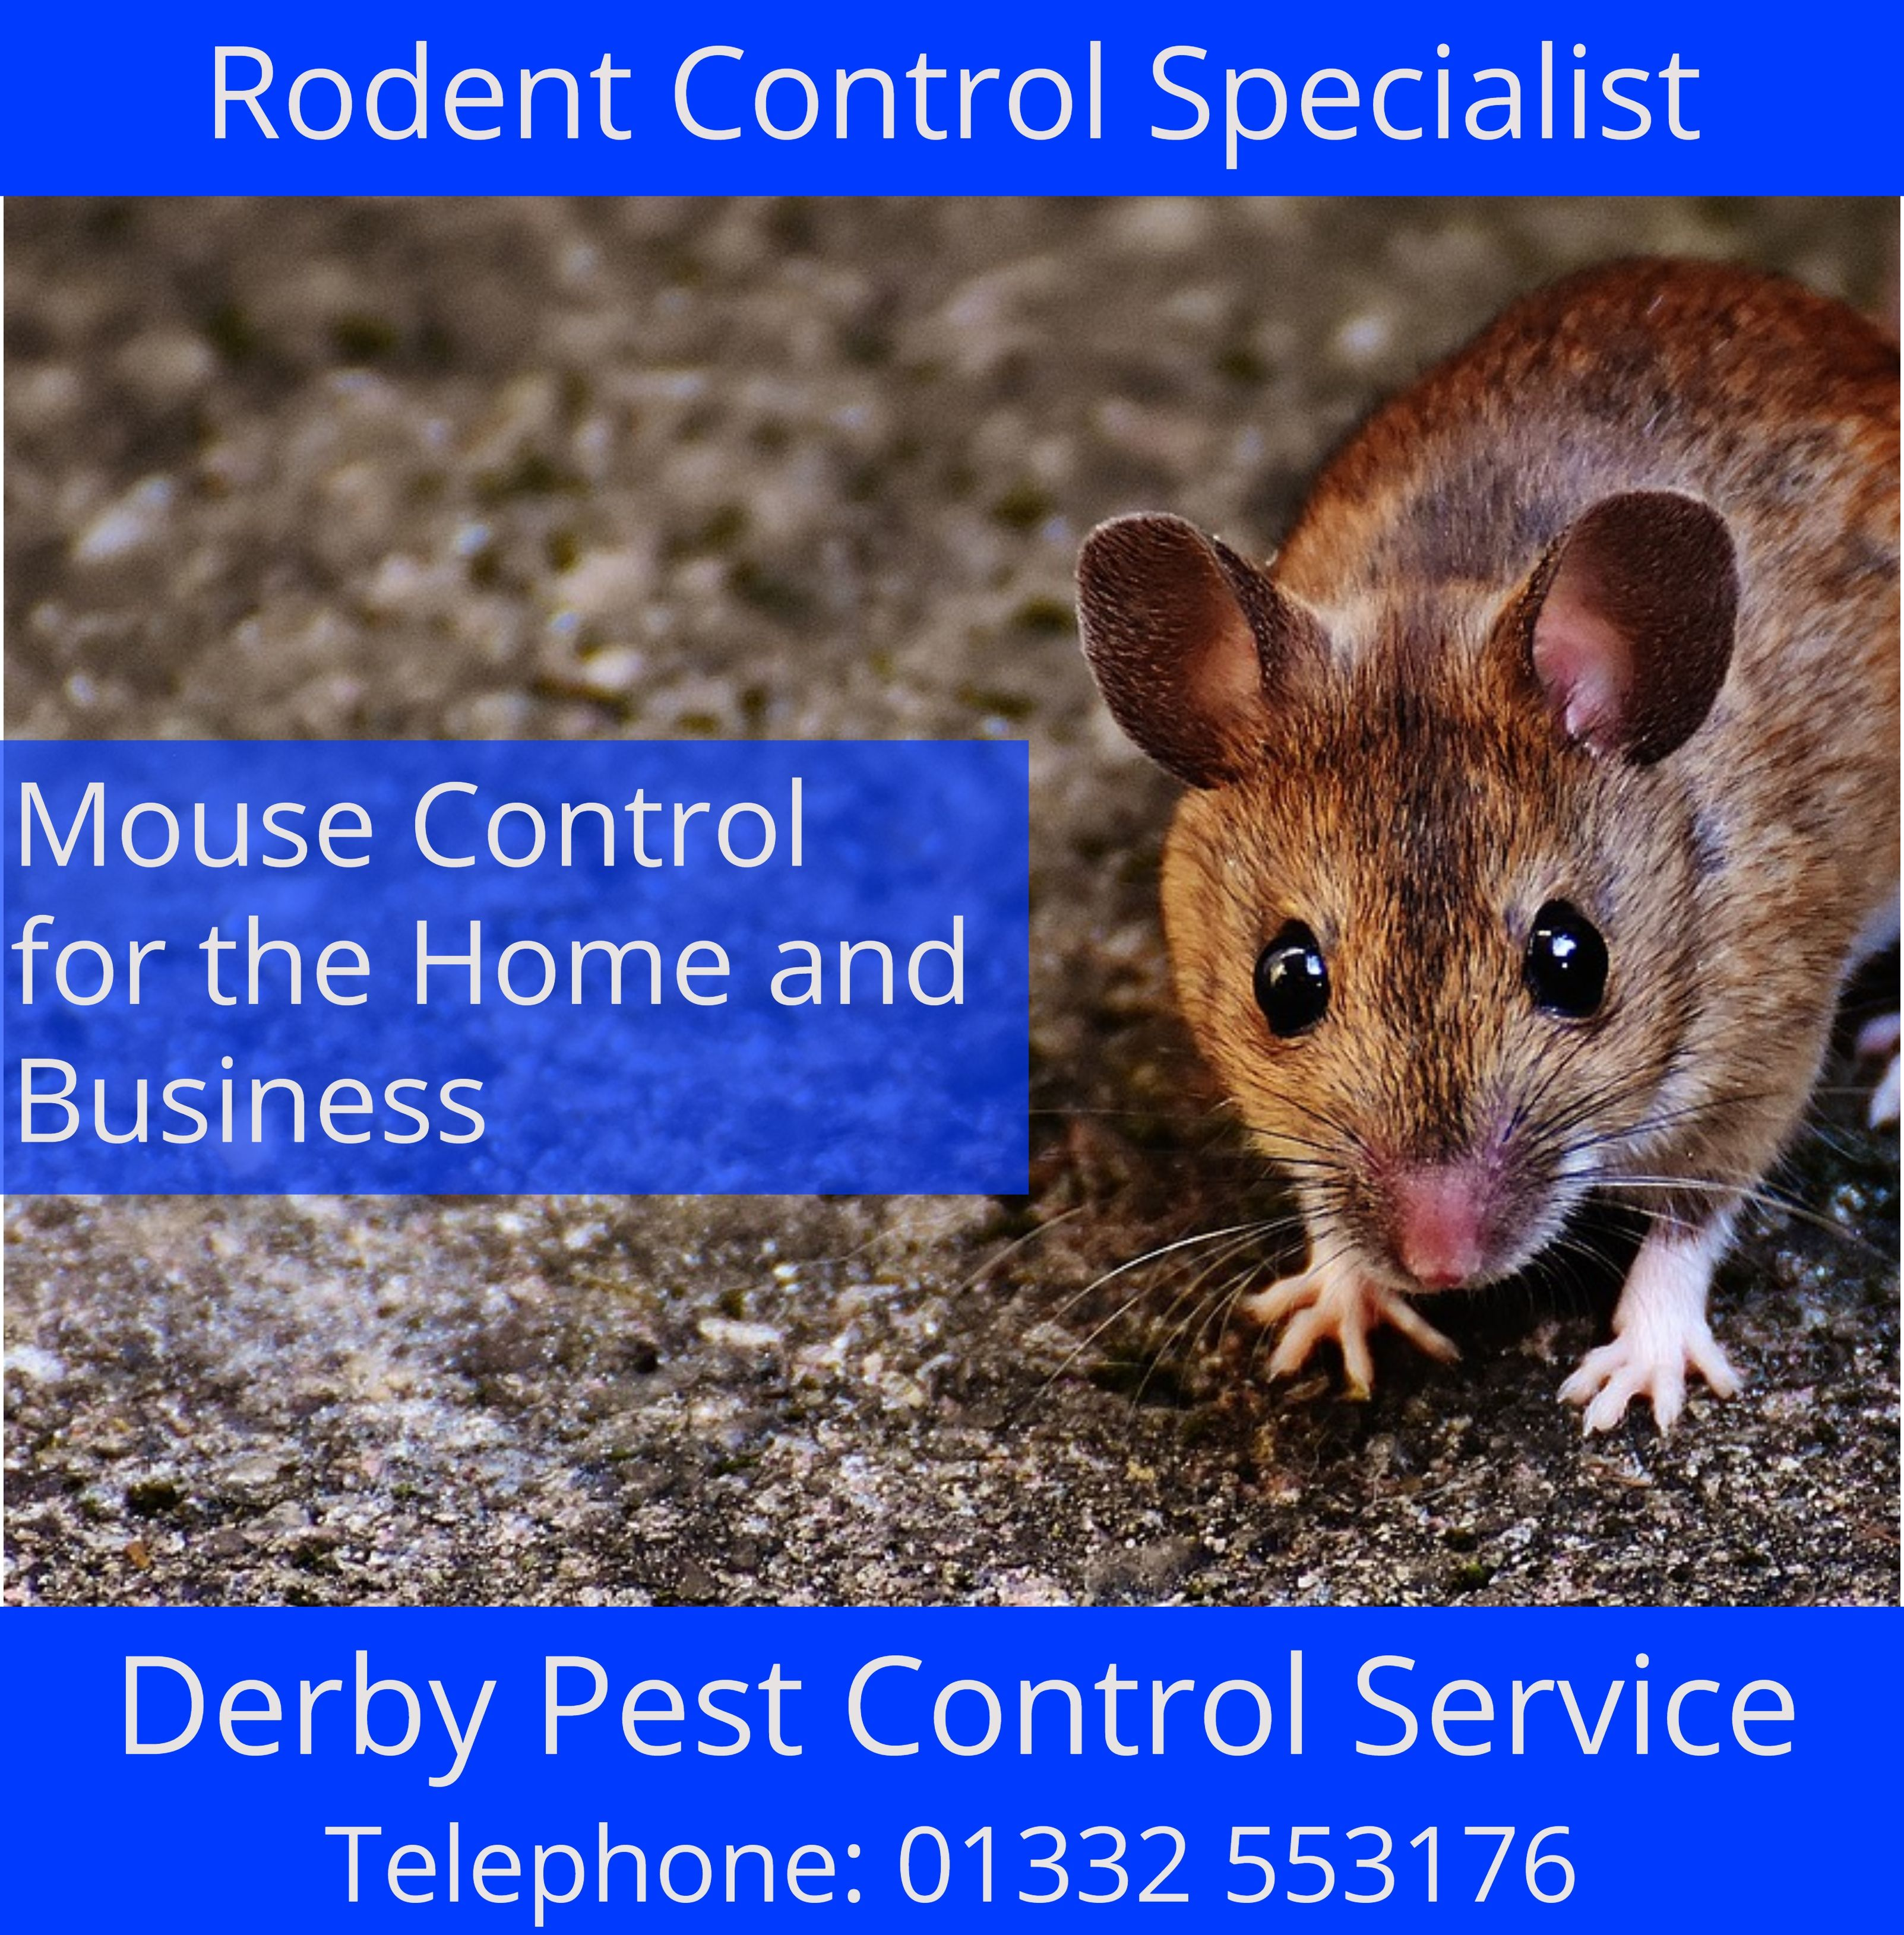 Find out how to resolve a mouse problem in your home or